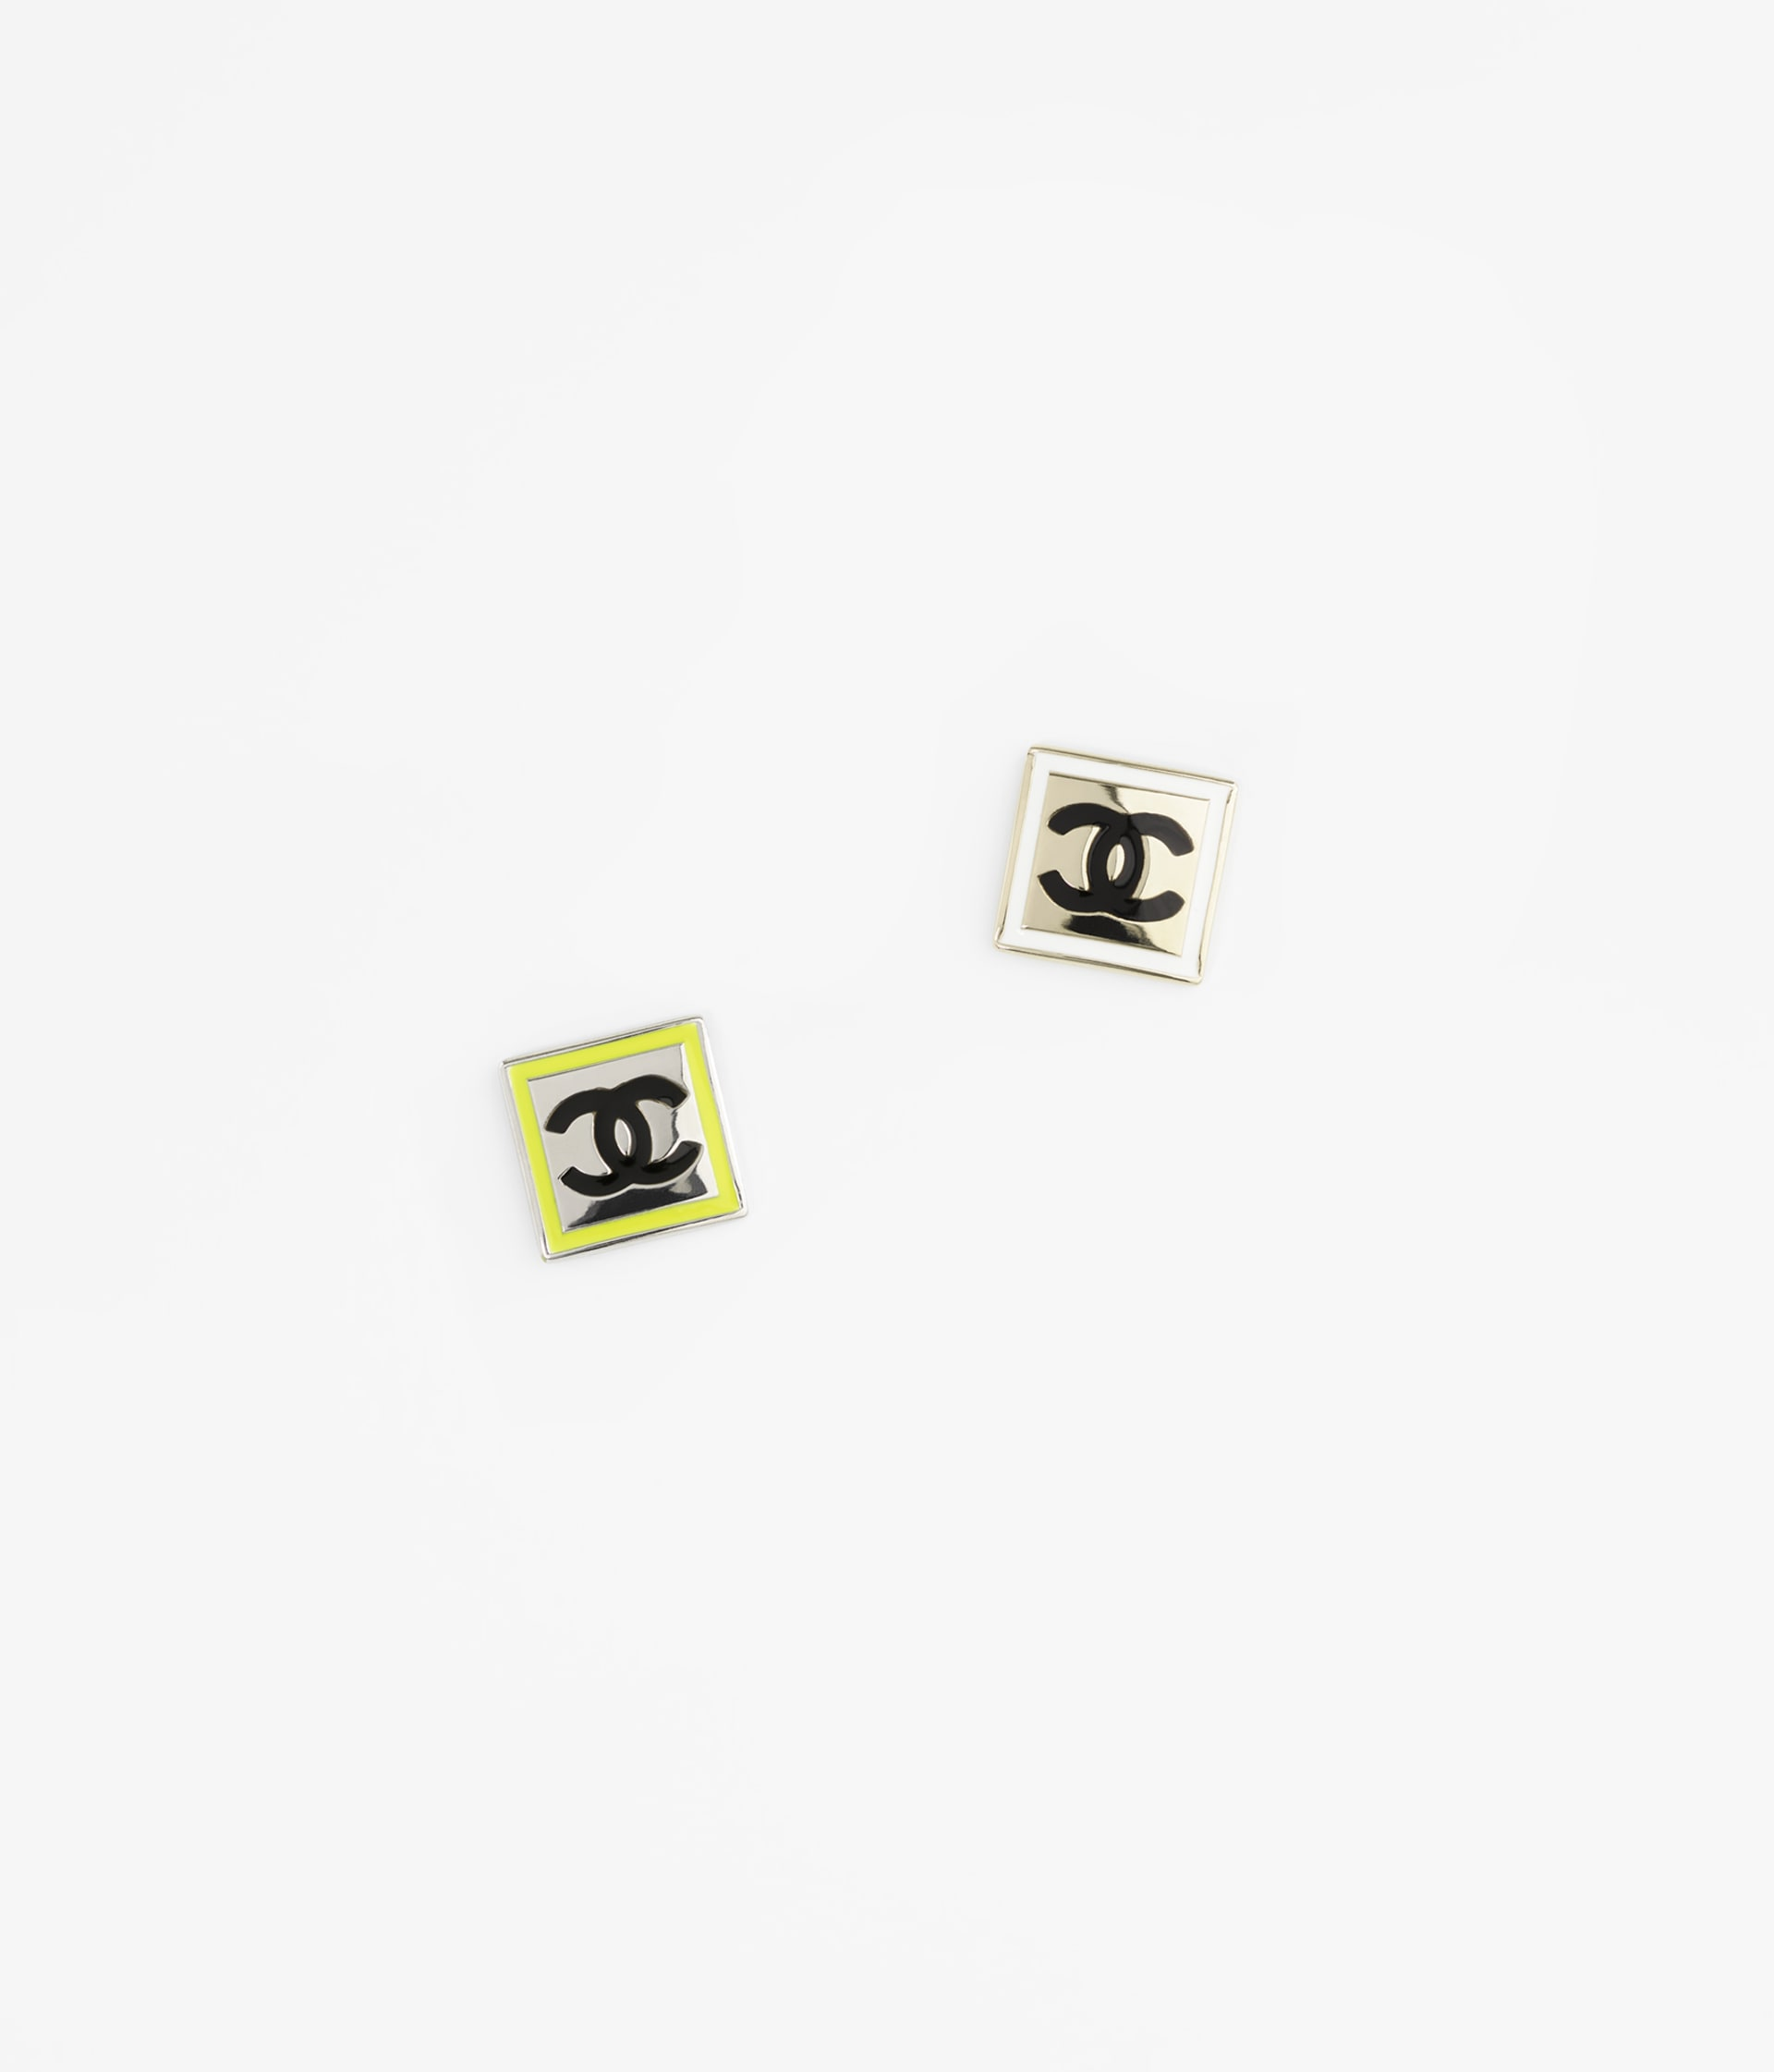 image 1 - Brooch - Metal - Gold, Silver, White, Neon Yellow & Black